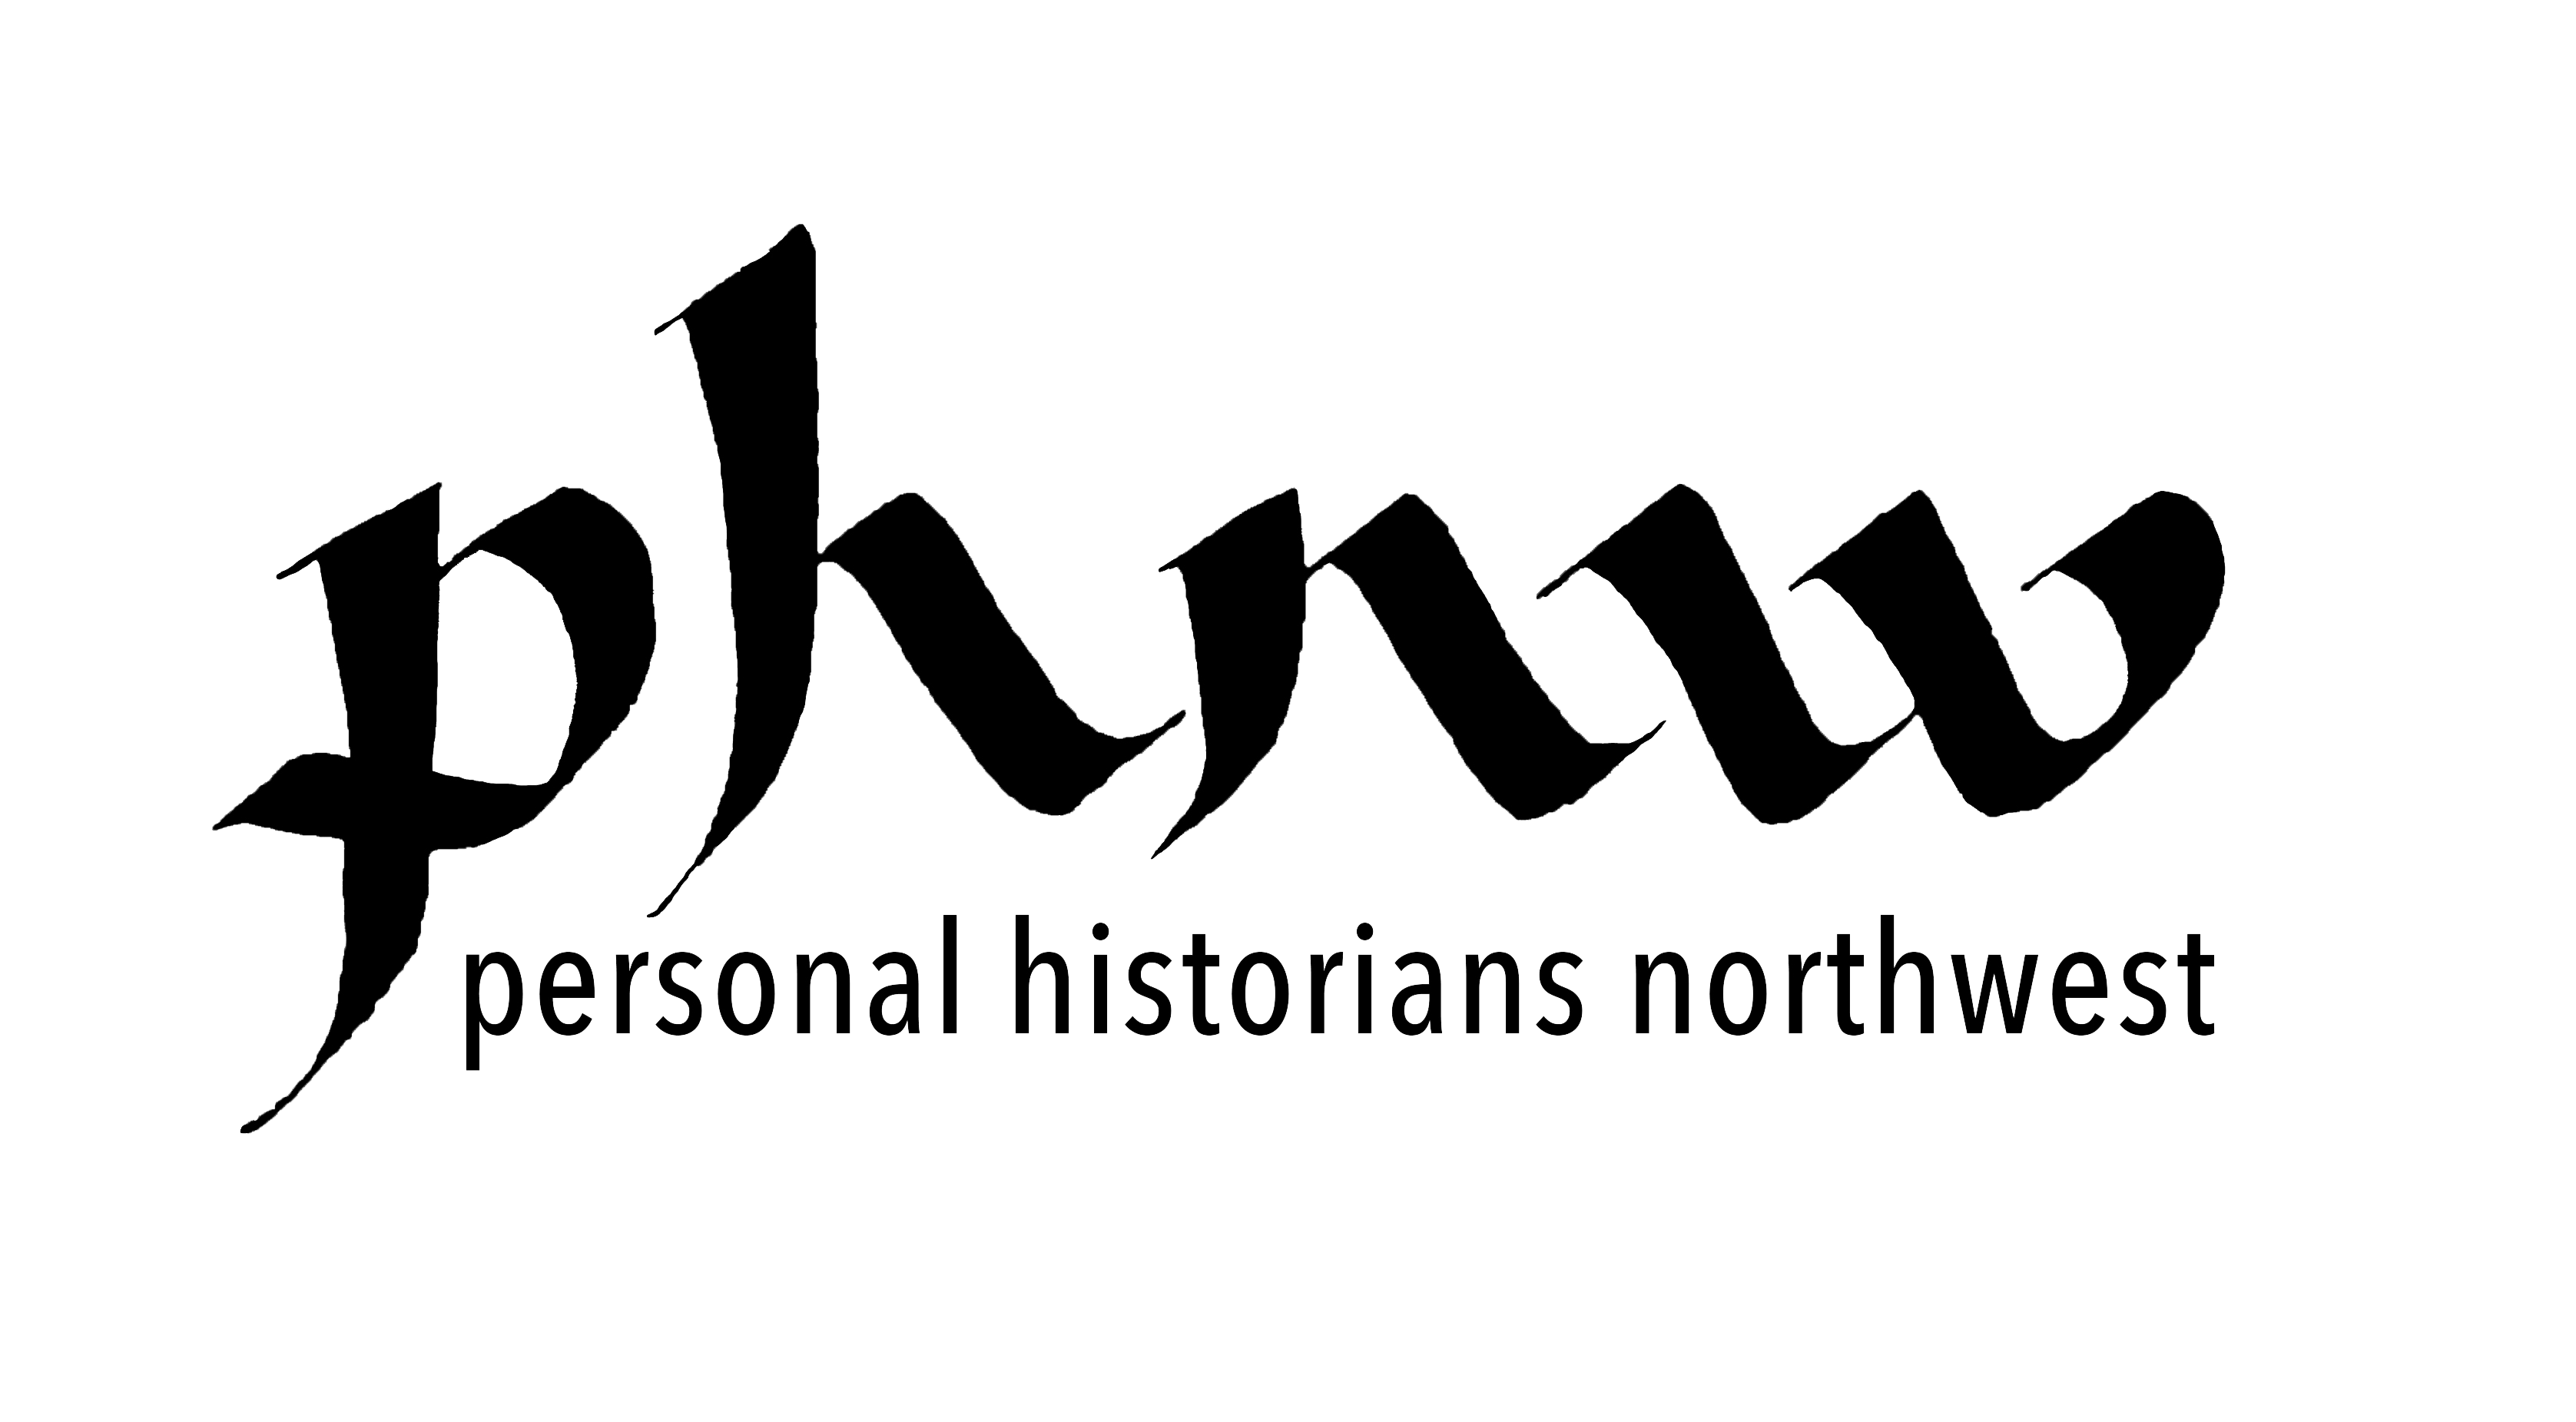 Logo Personal HIstorians NW